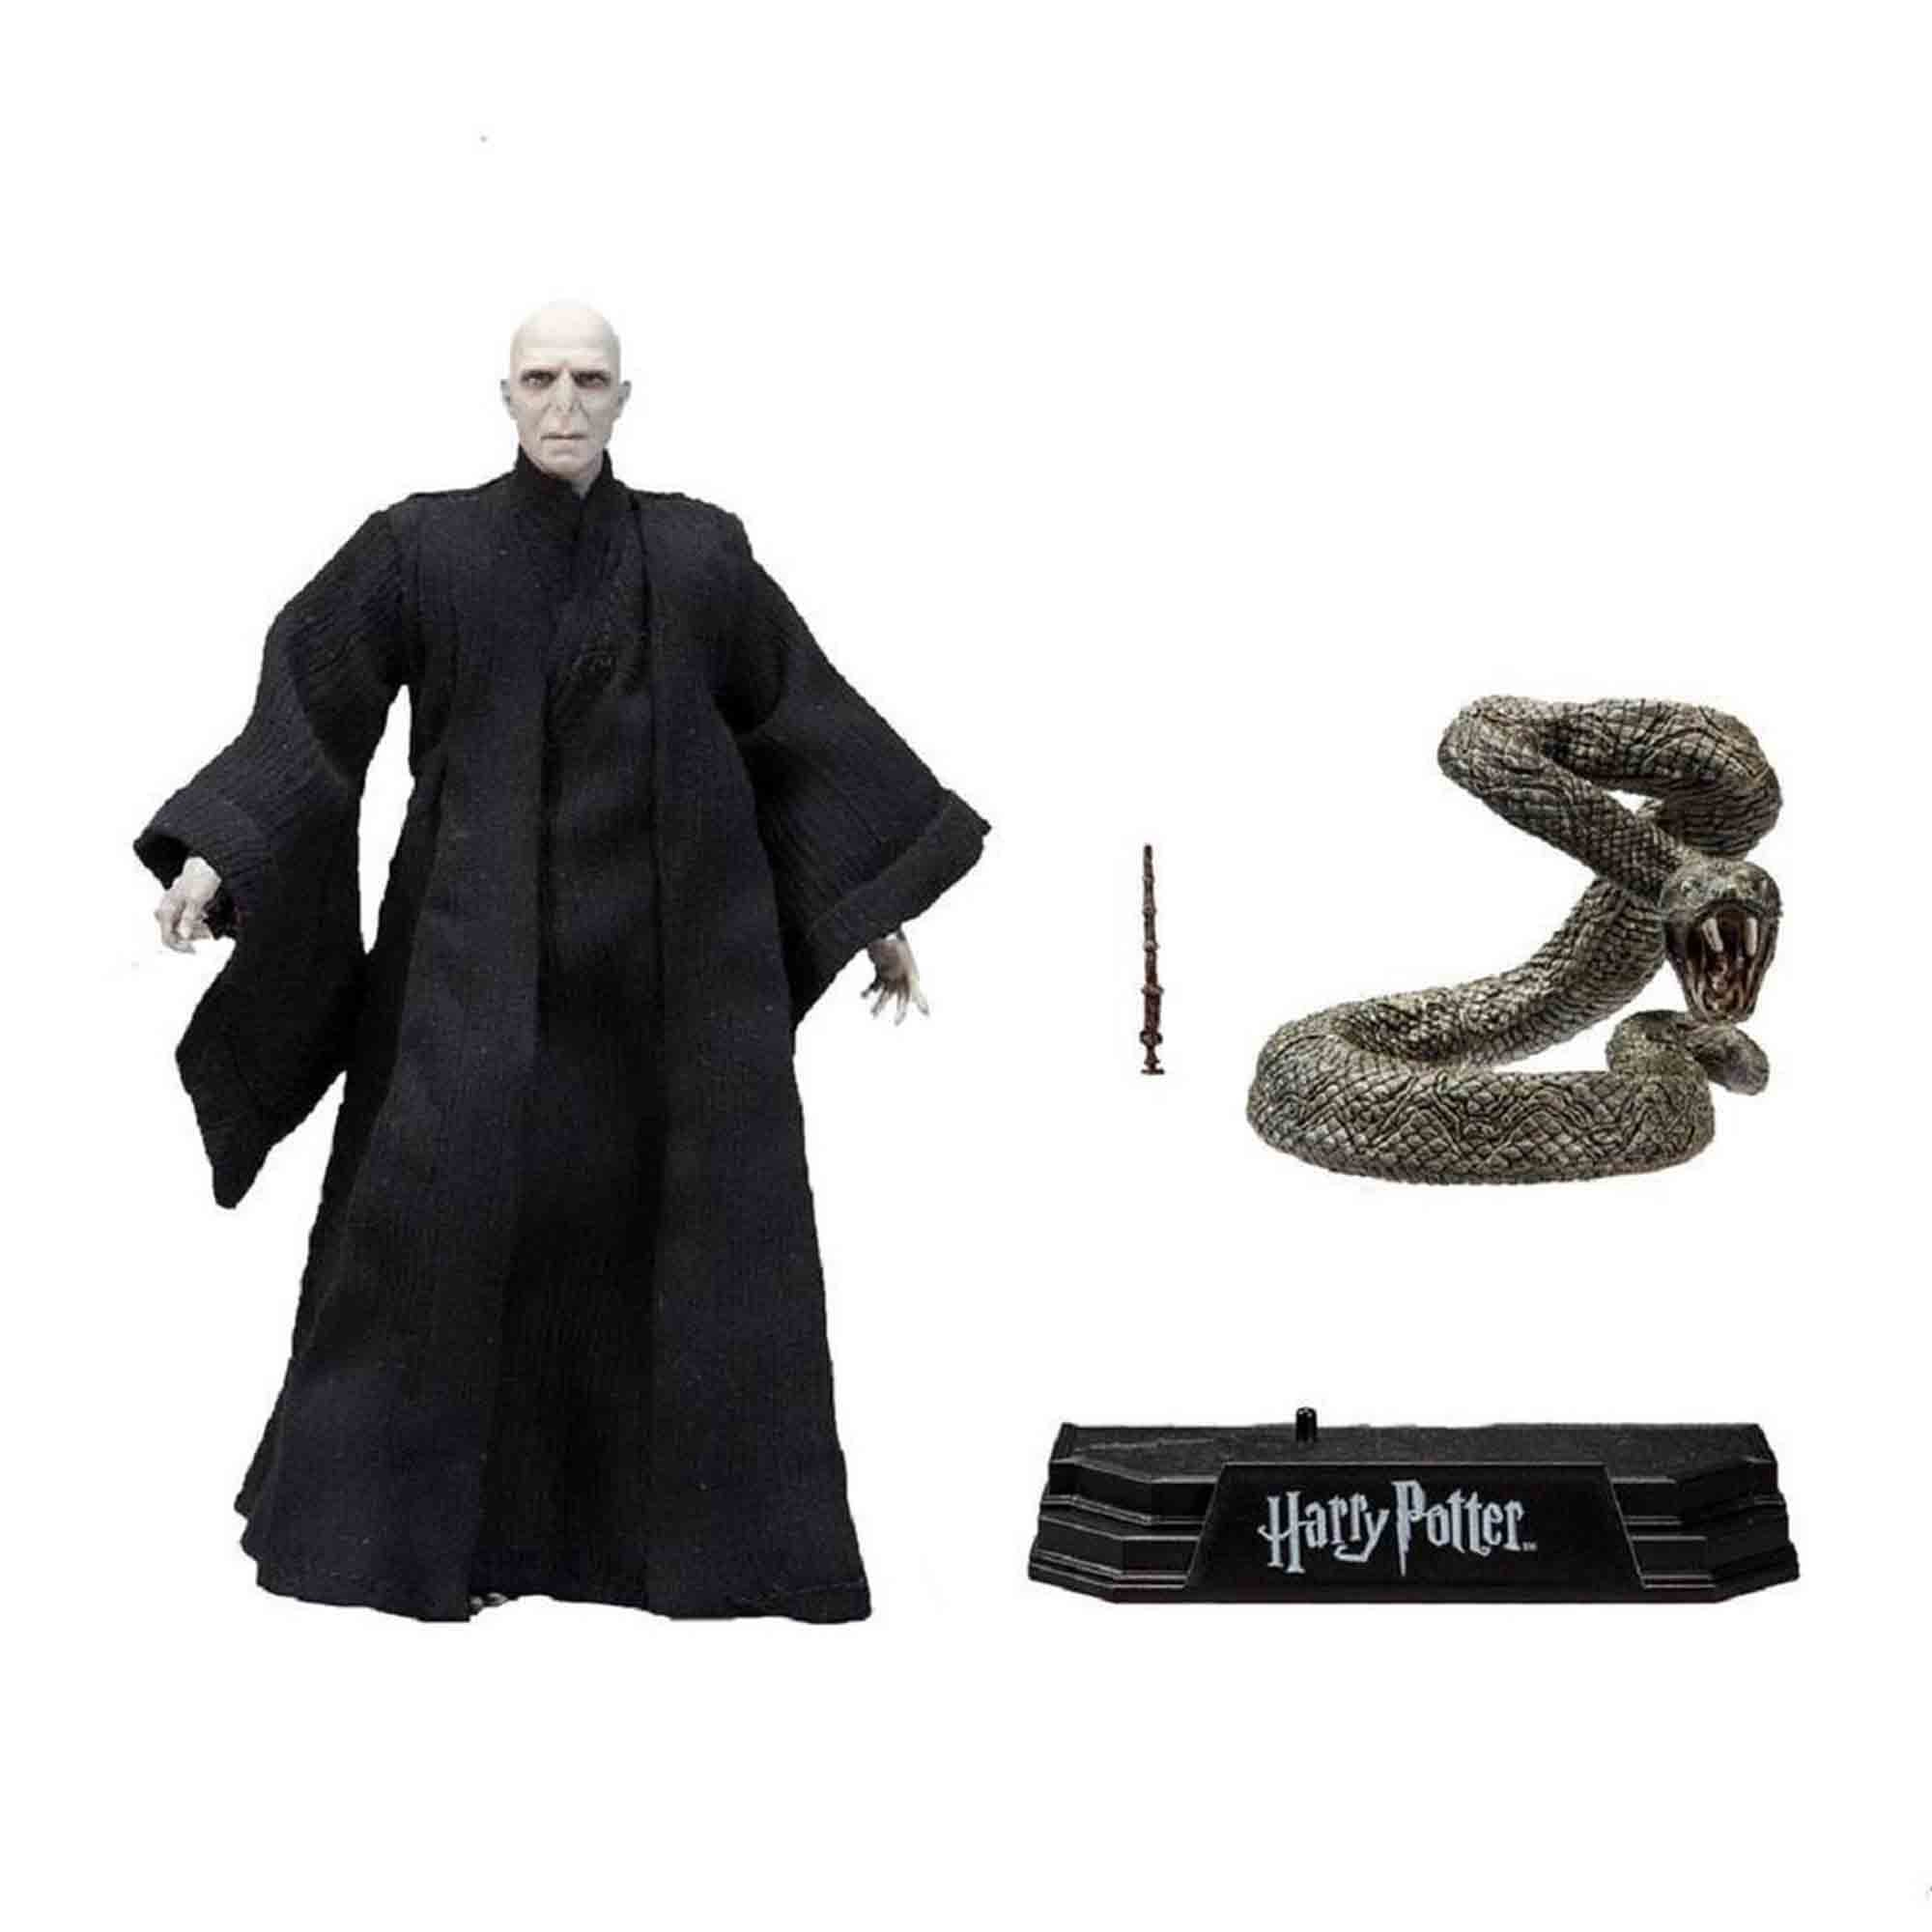 Lord Voldemort Harry Potter Wizarding World - Mcfarlane